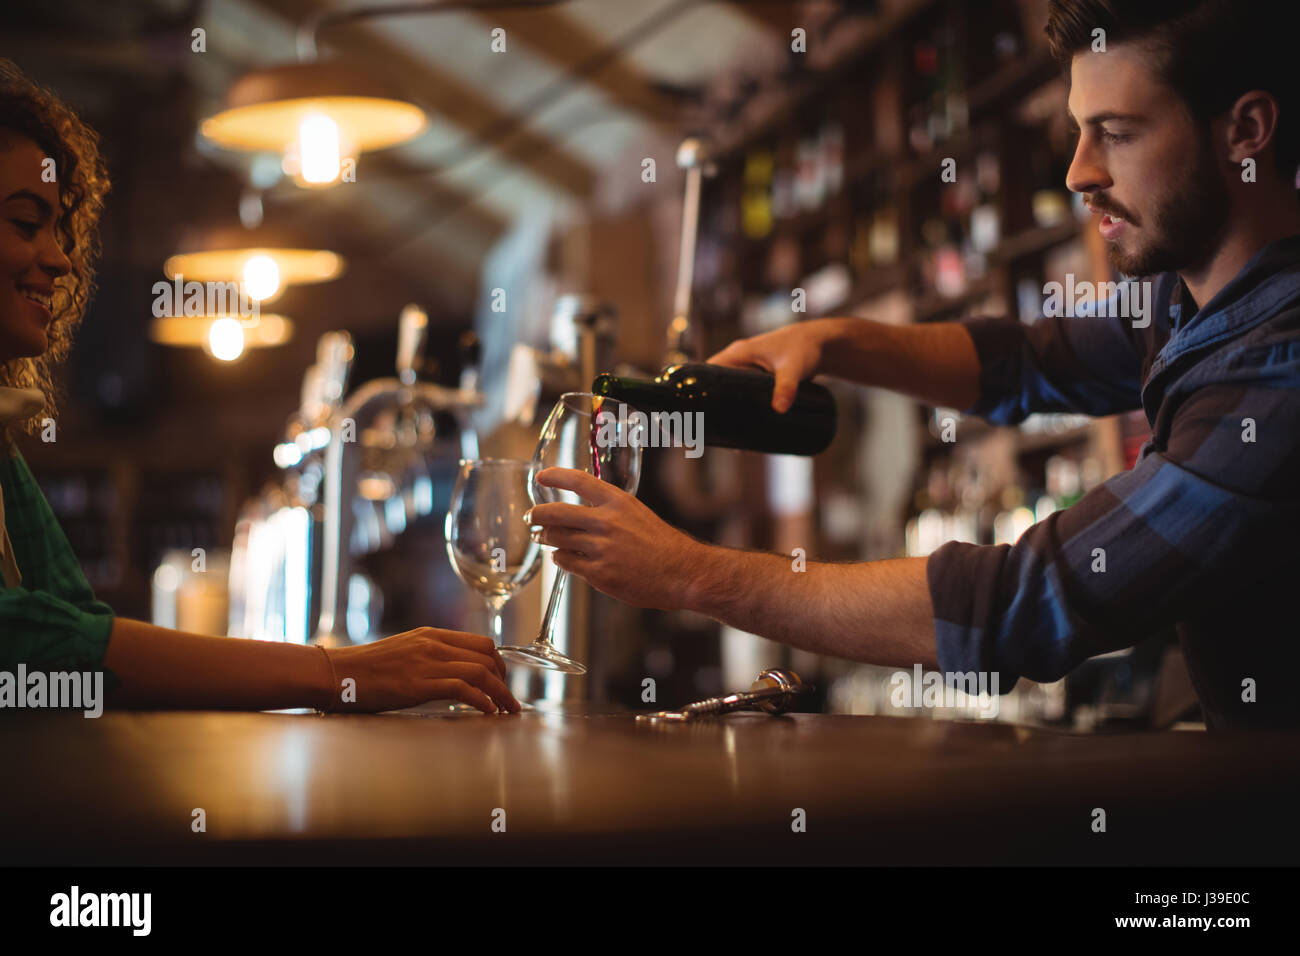 Male bar tender pouring wine in glasses at bar counter - Stock Image